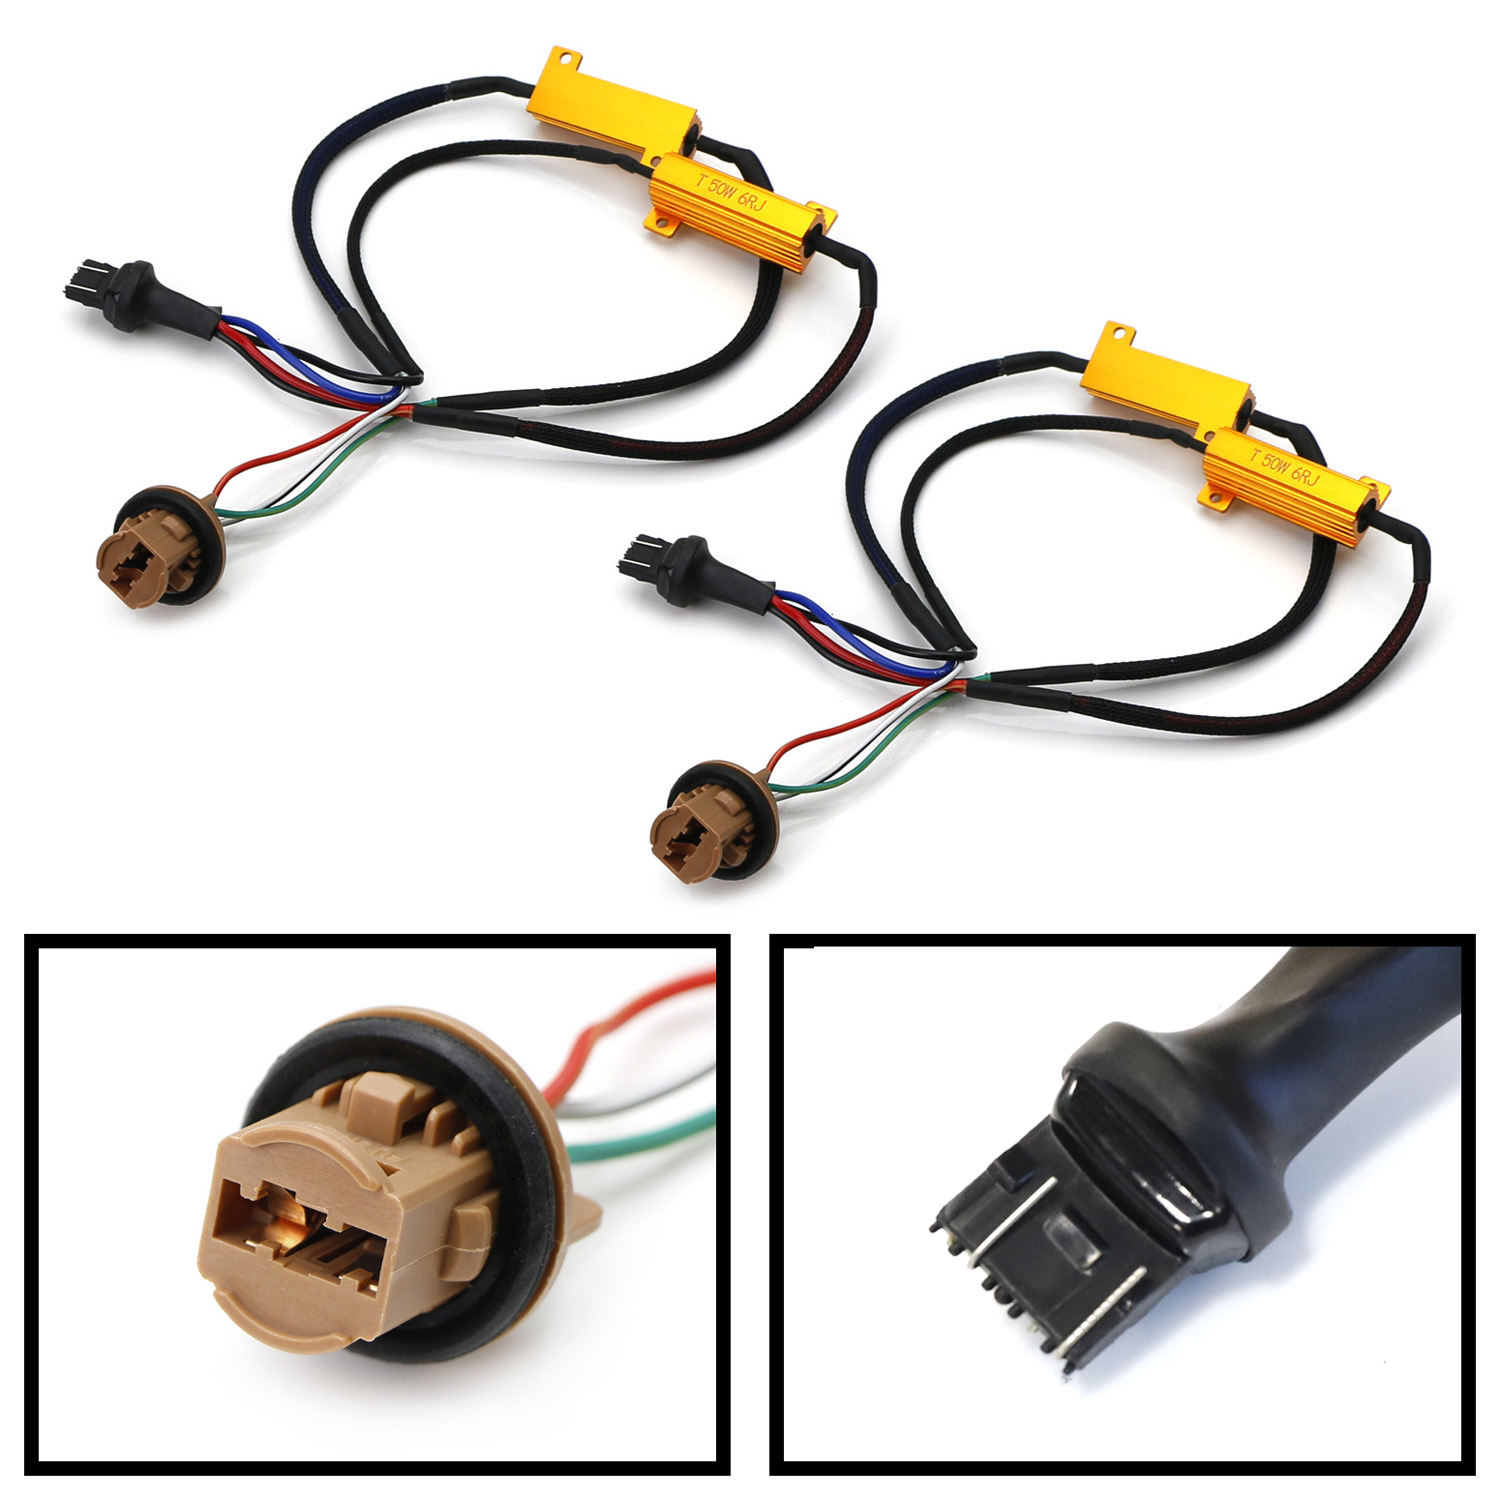 hight resolution of ijdmtoy 2 hyper flash bulb out error fix wiring adapters for 7443 7444 t20 led bulbs turn signal or tail brake lights walmart com